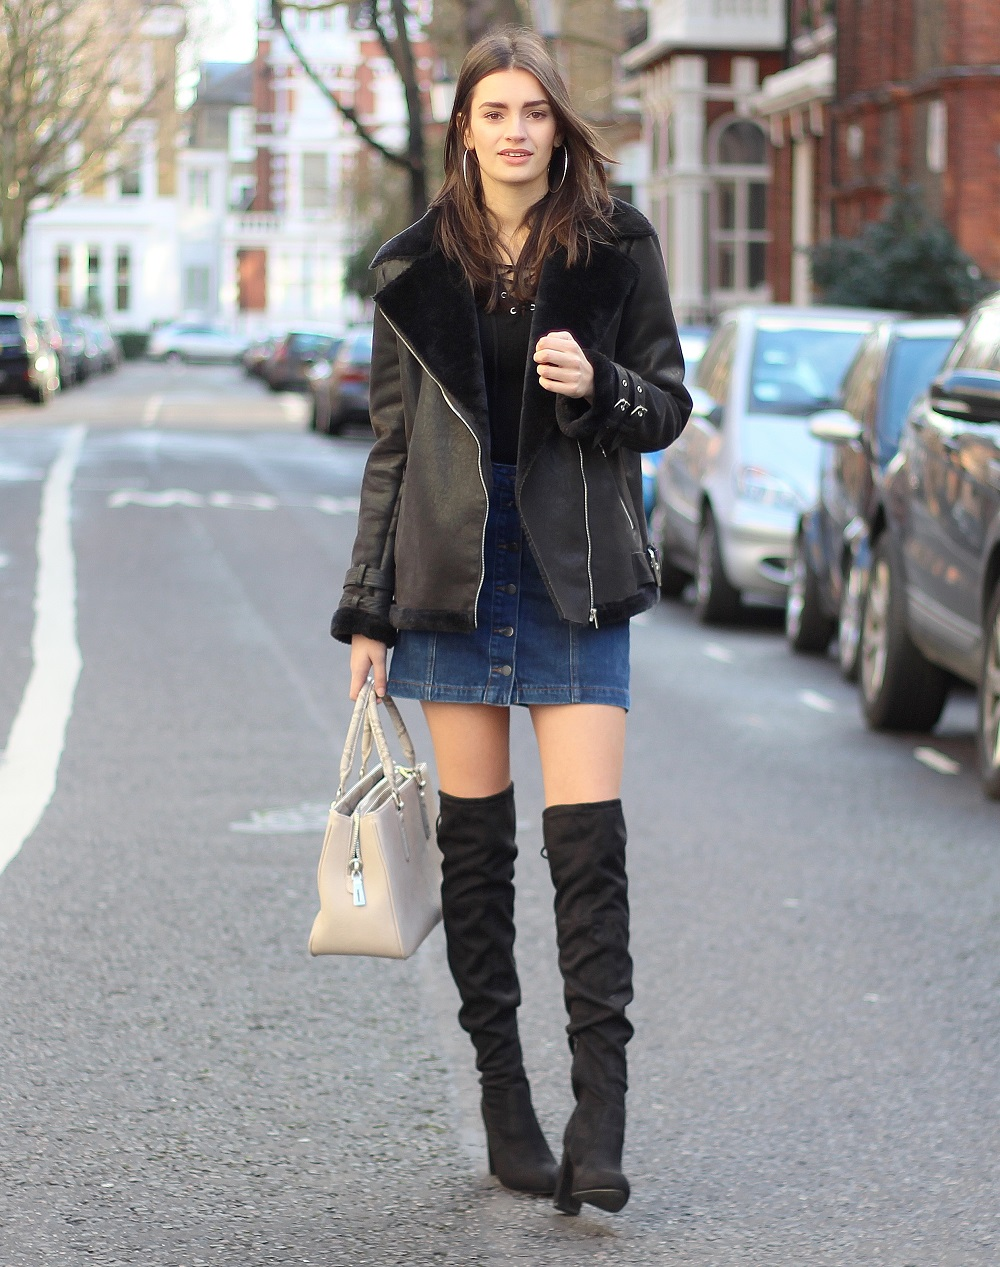 peexo fashion blogger wearing aviator jacket and knee high boots